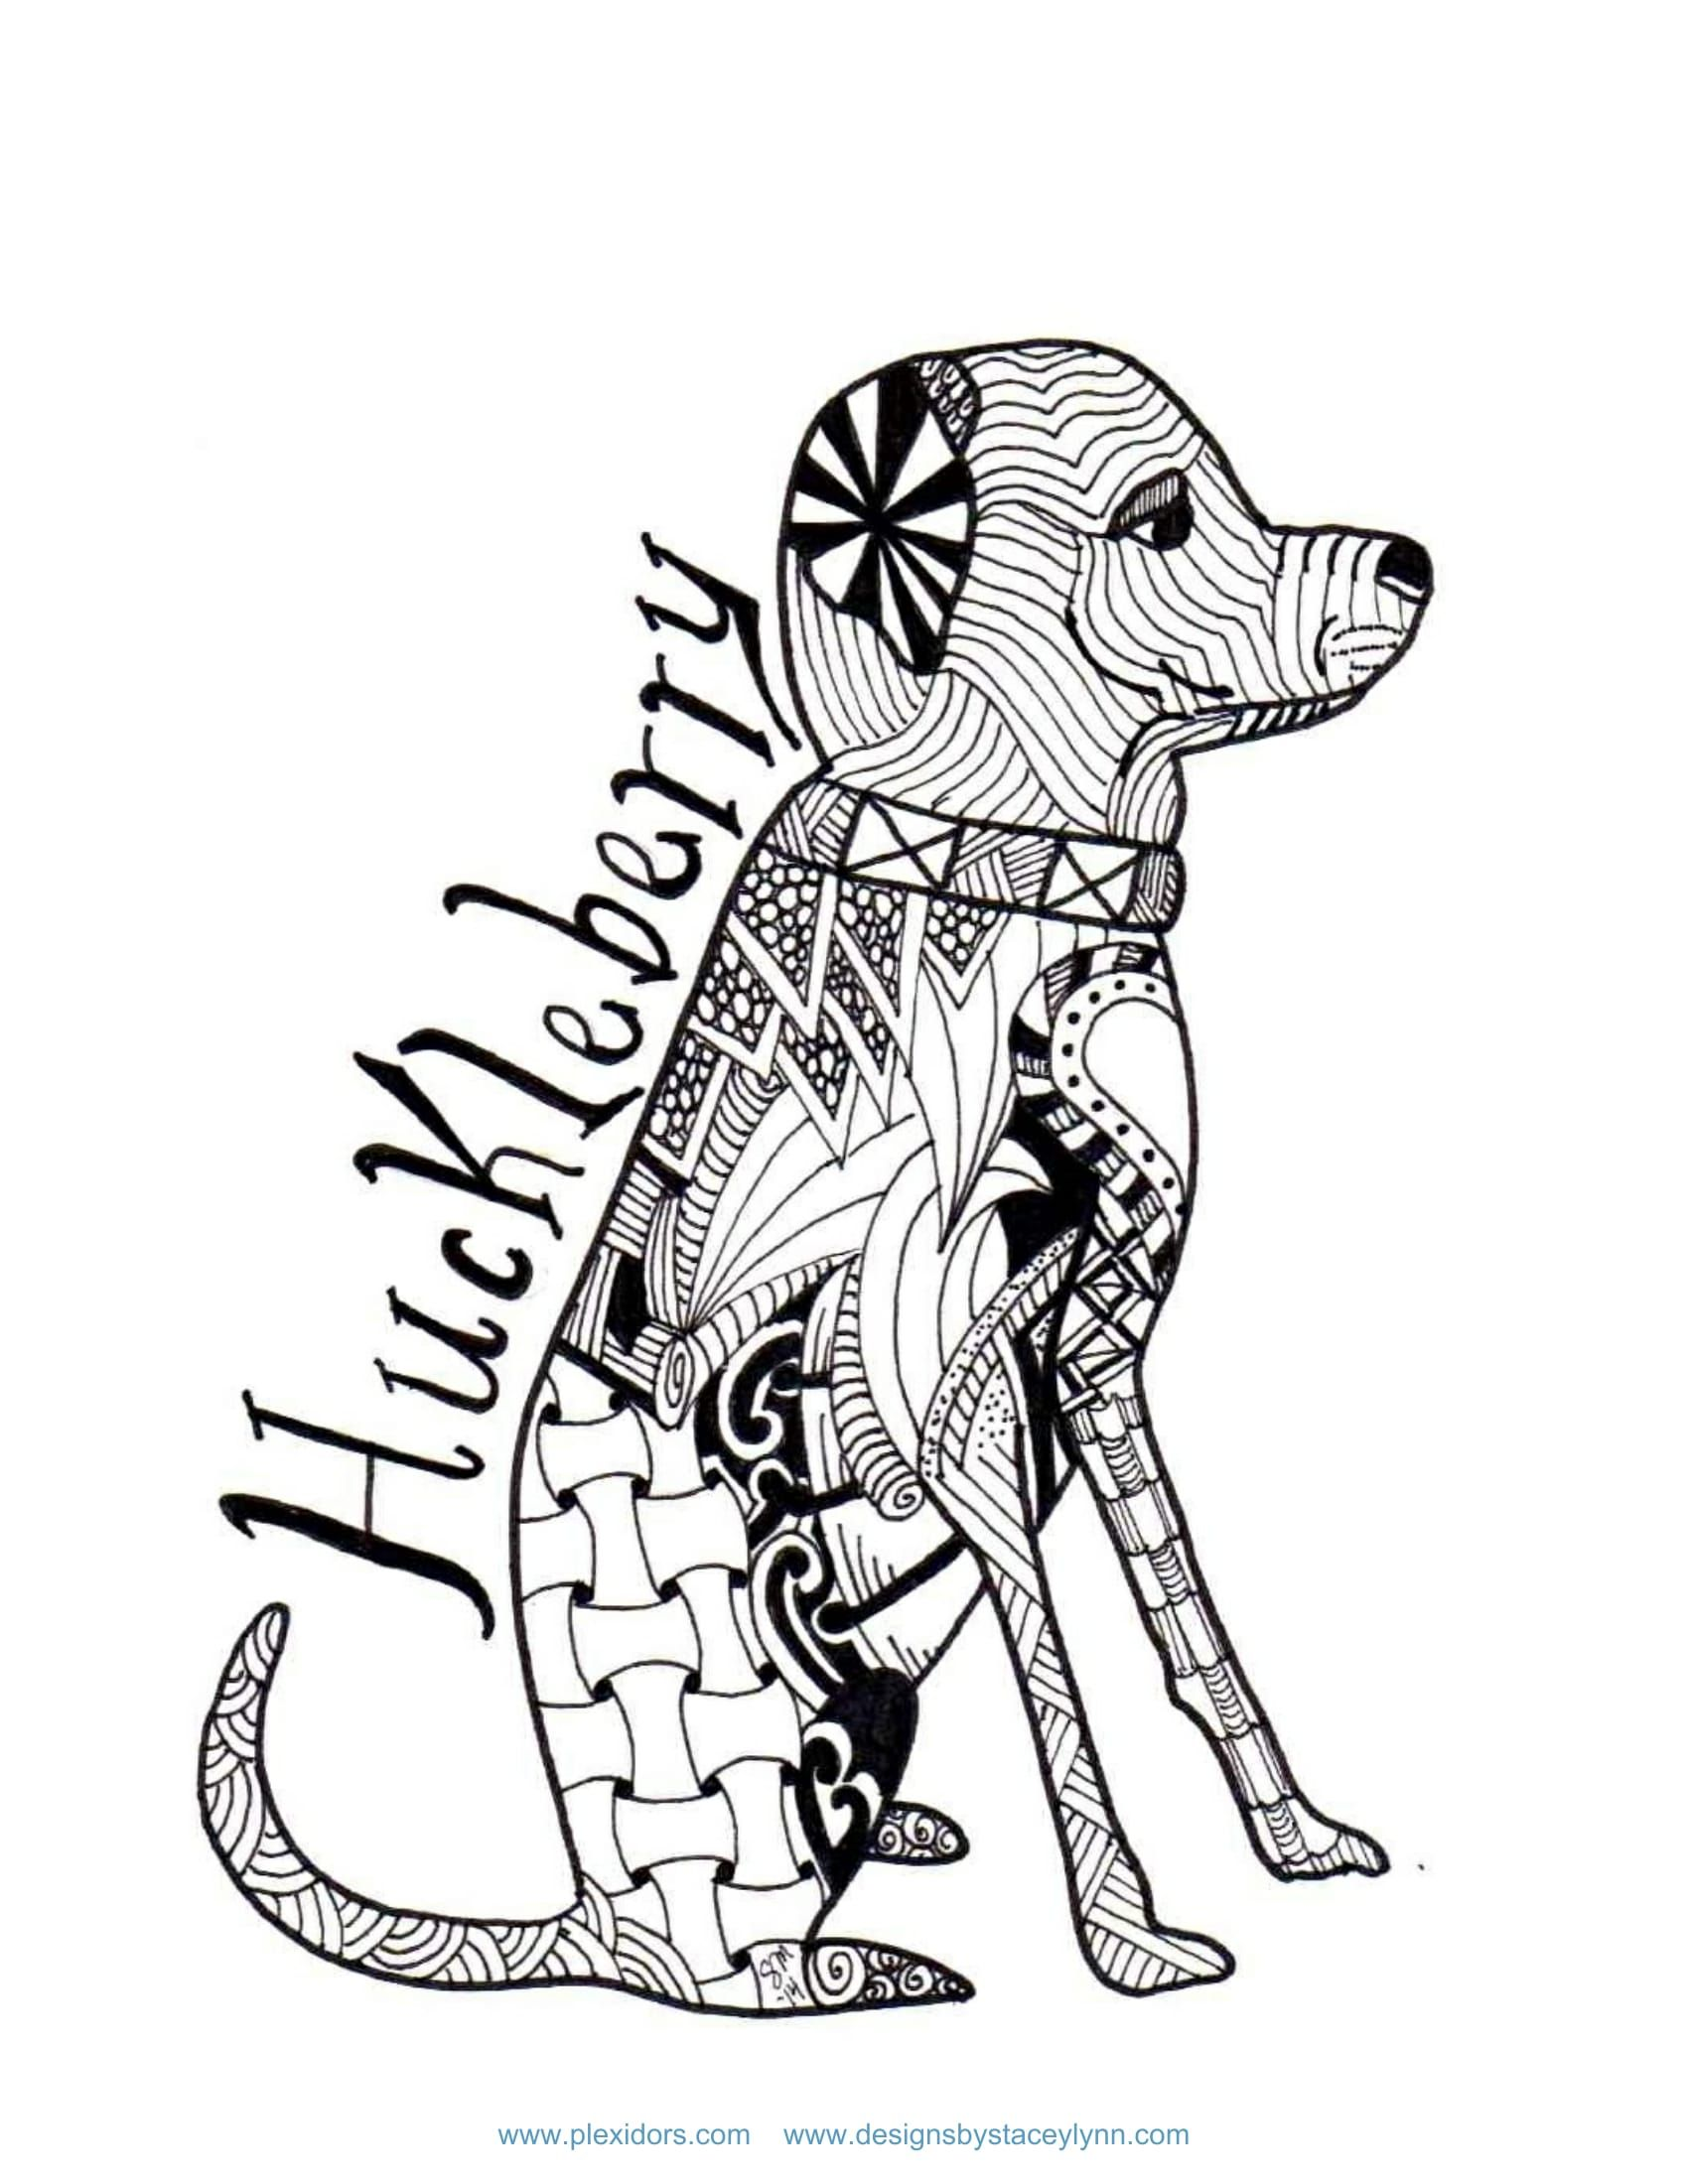 Huckleberry Dog coloring sheet | Activity and Coloring Sheets ...